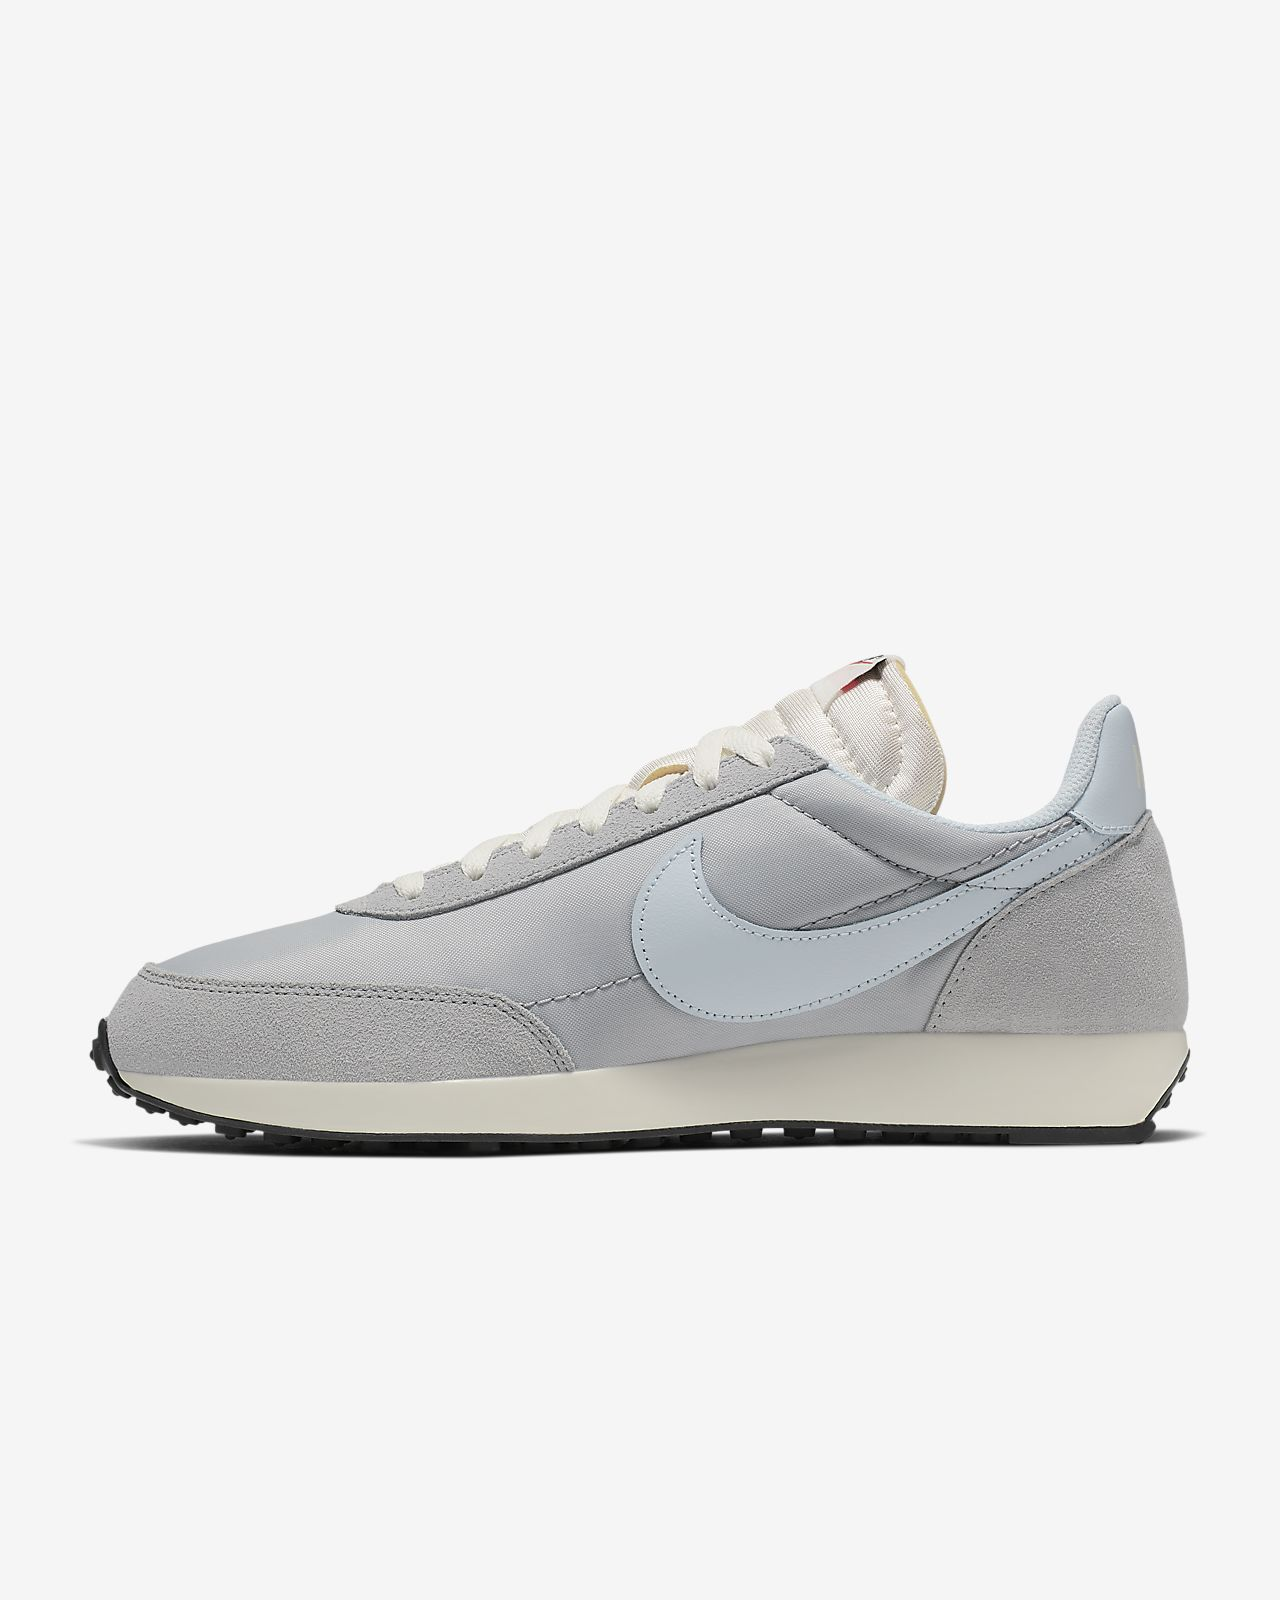 Details about We Will Fit shirt for Nike air max 720 Be True air max 90 tailwind 79 airmax